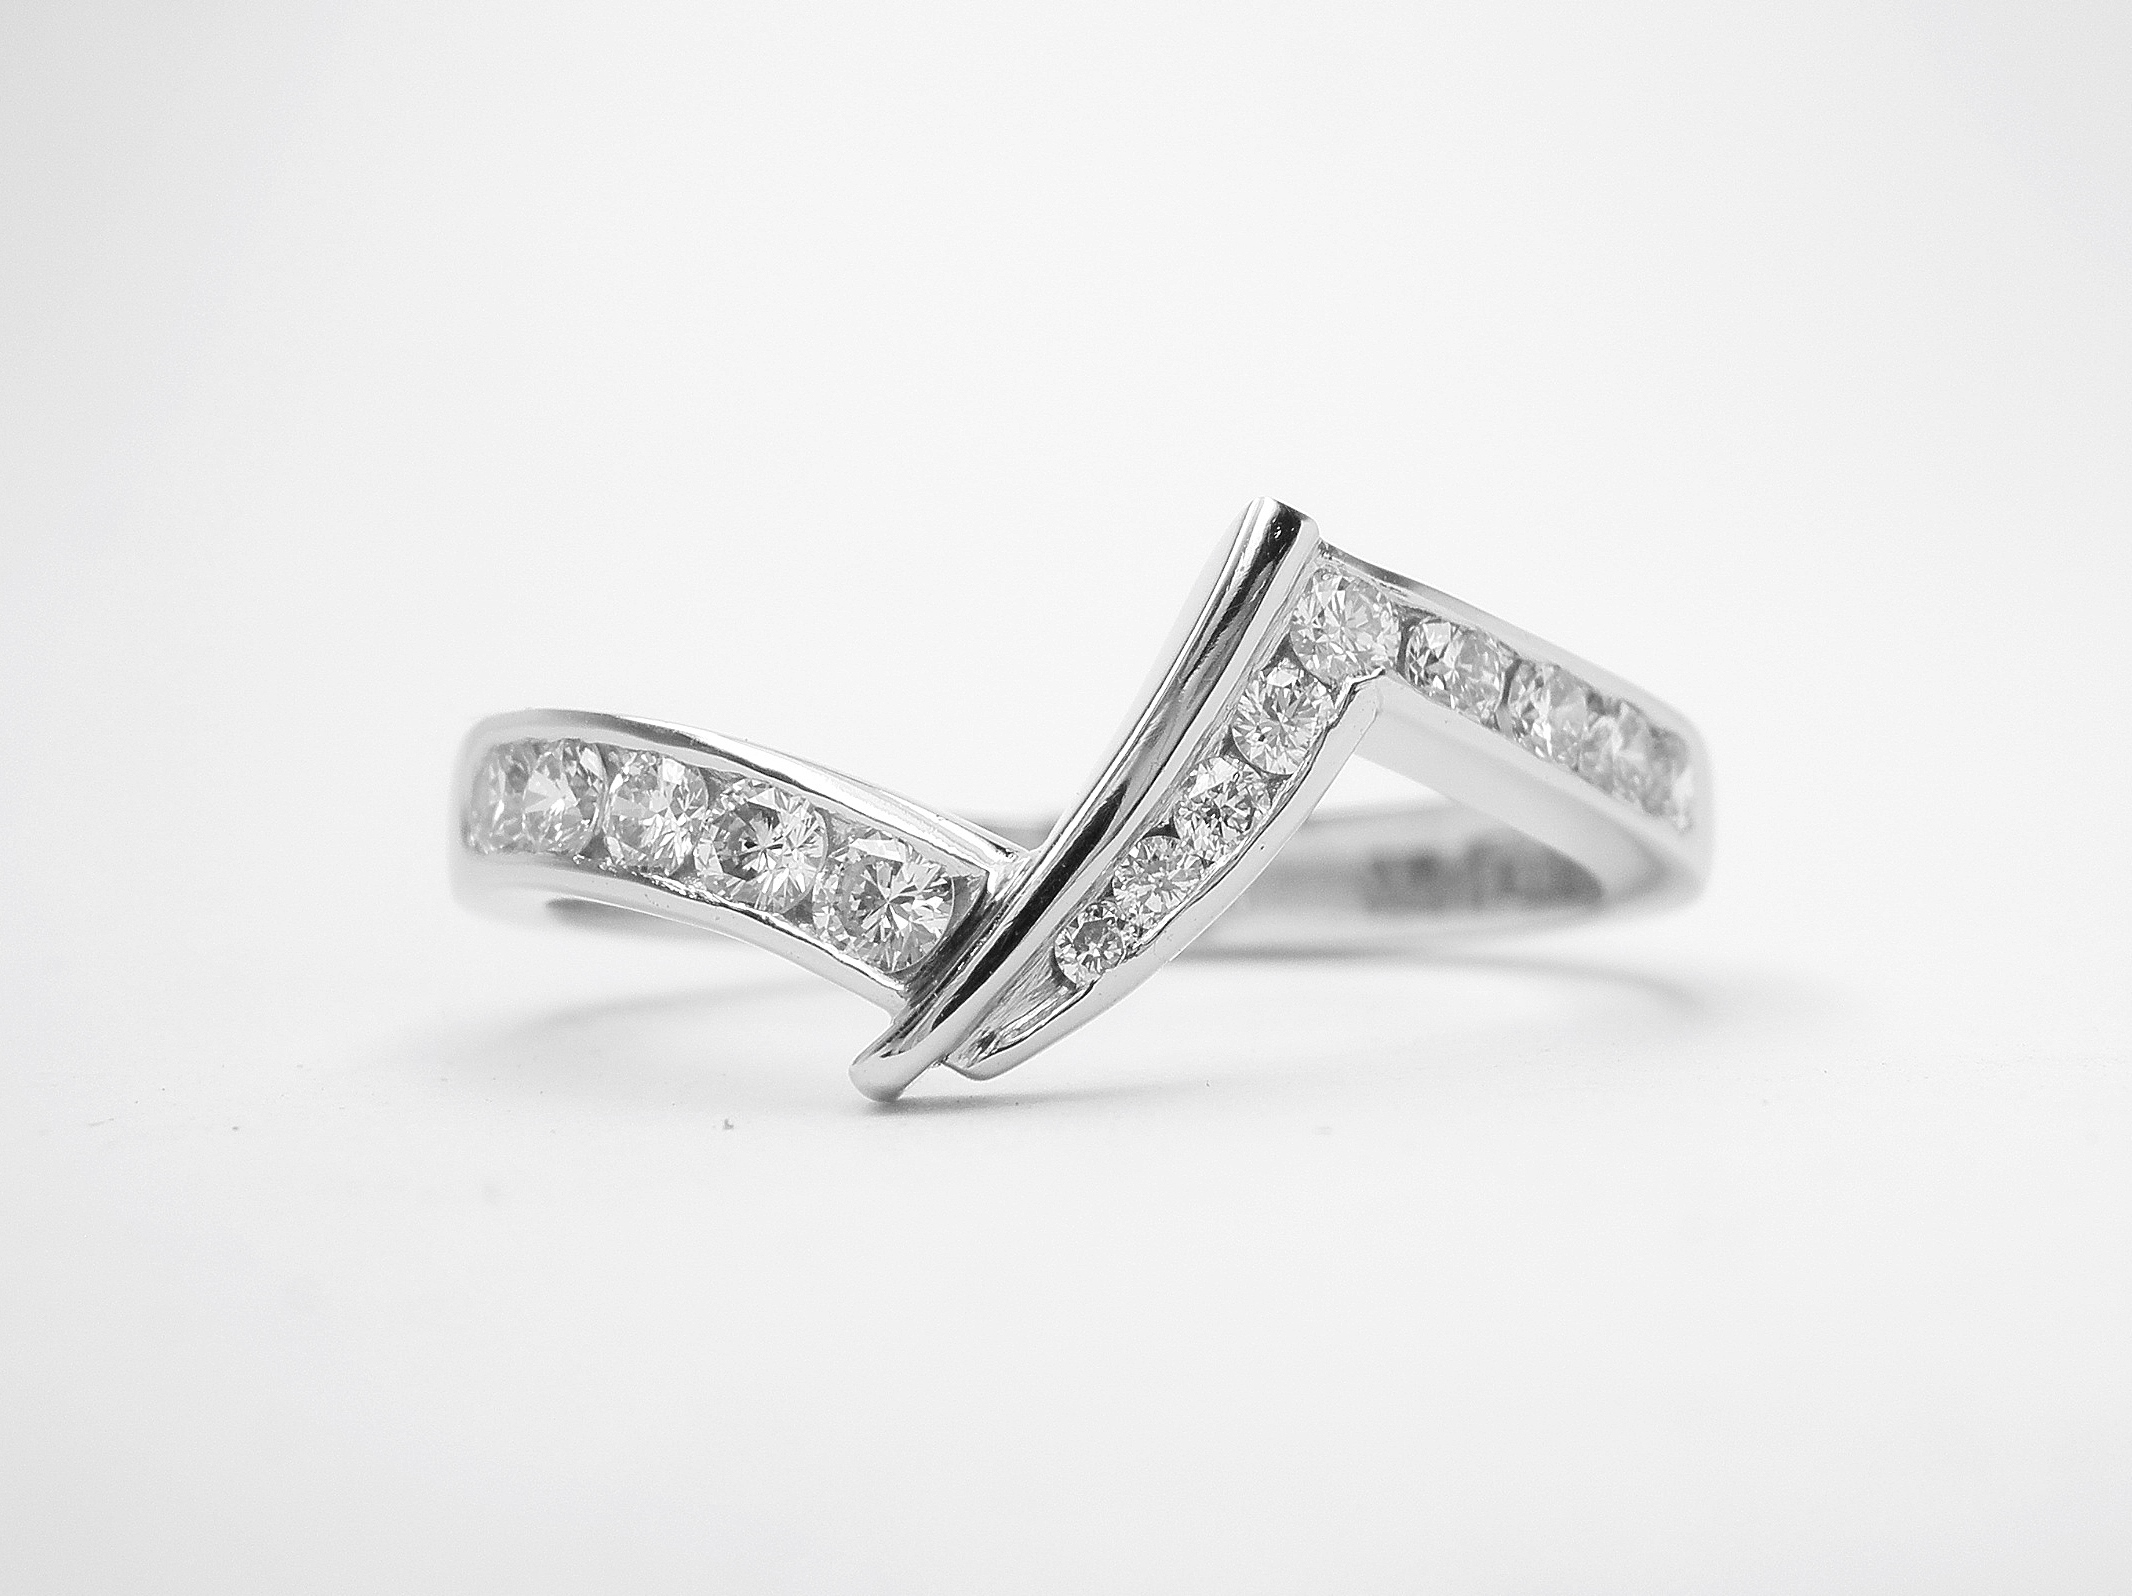 Platinum zig-zag wedding ring shaped to fit a pear shaped cross-over engagement ring, channel set with brilliant cut diamonds to 45% cover. This would also suite a marquise cross-over.